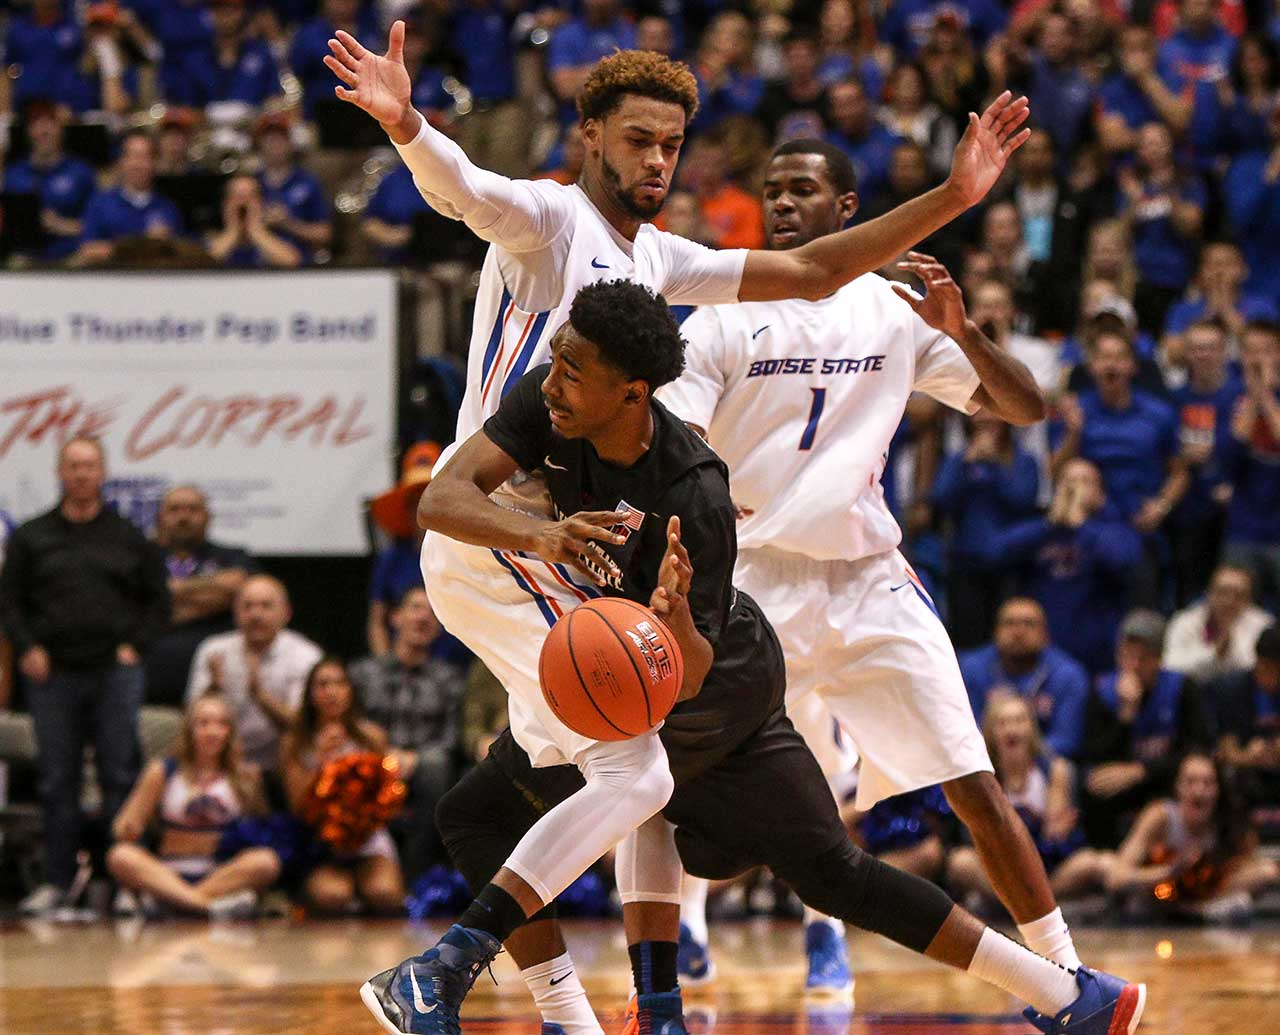 Guard Jeremy Hemsley of the San Diego State Aztecs turns the ball over due to the defense of forward James Webb III of the Boise State Broncos.